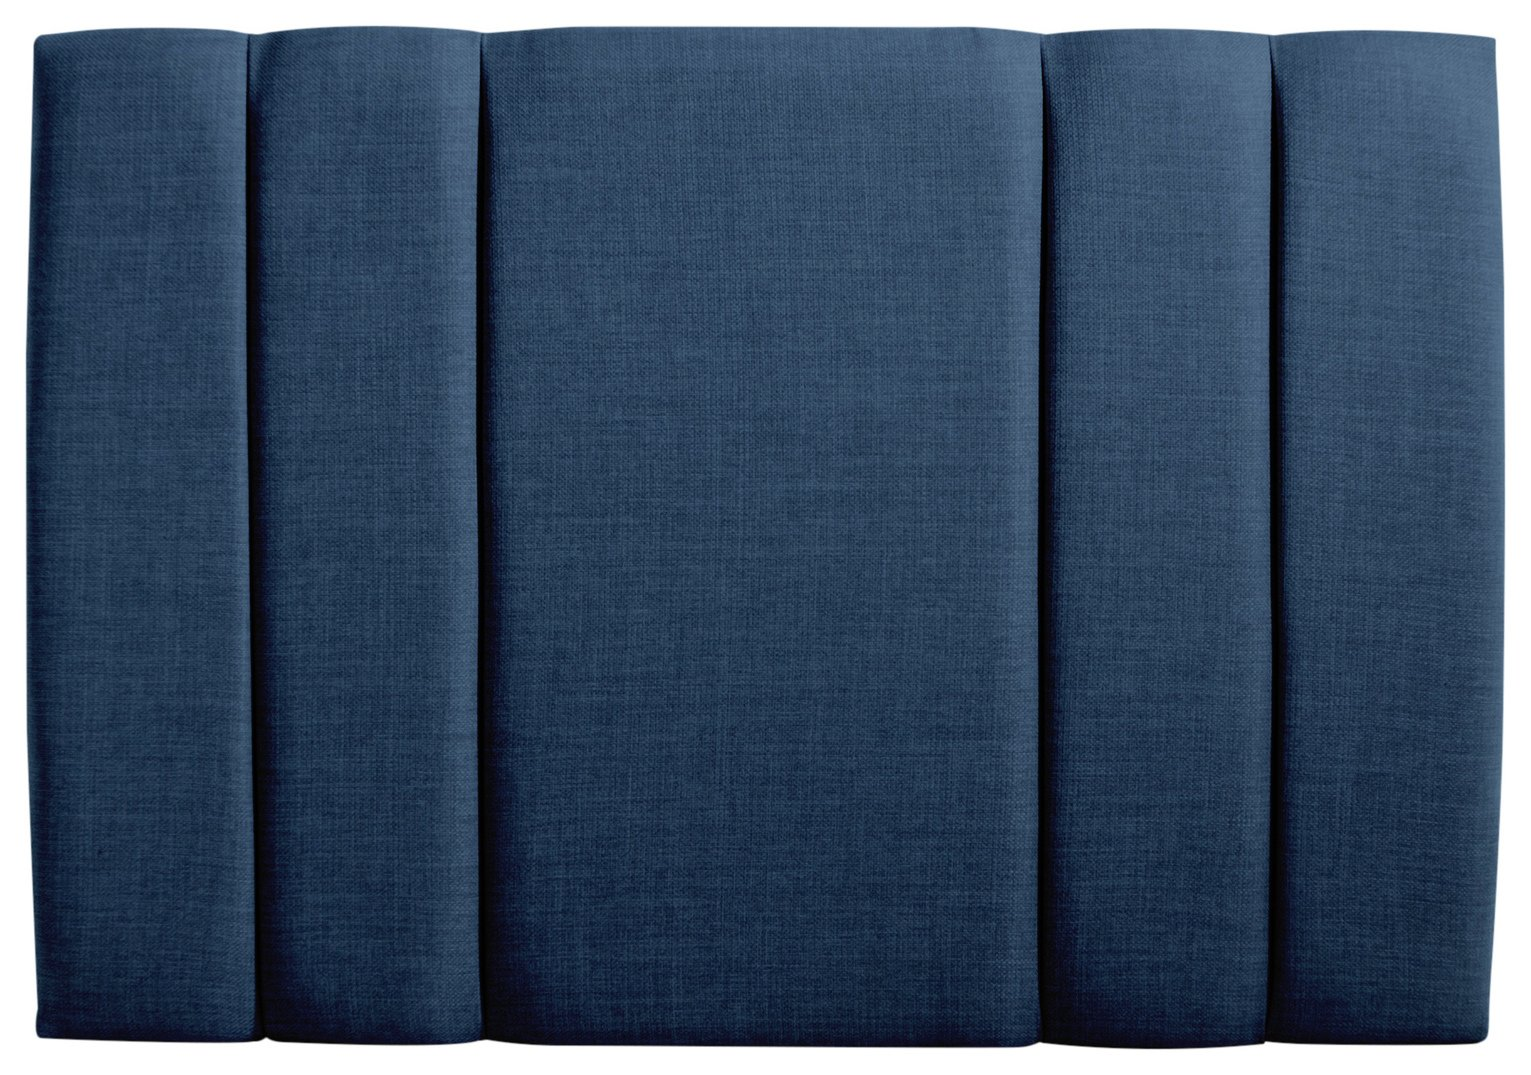 Airsprung Shawbury Single Headboard - Navy